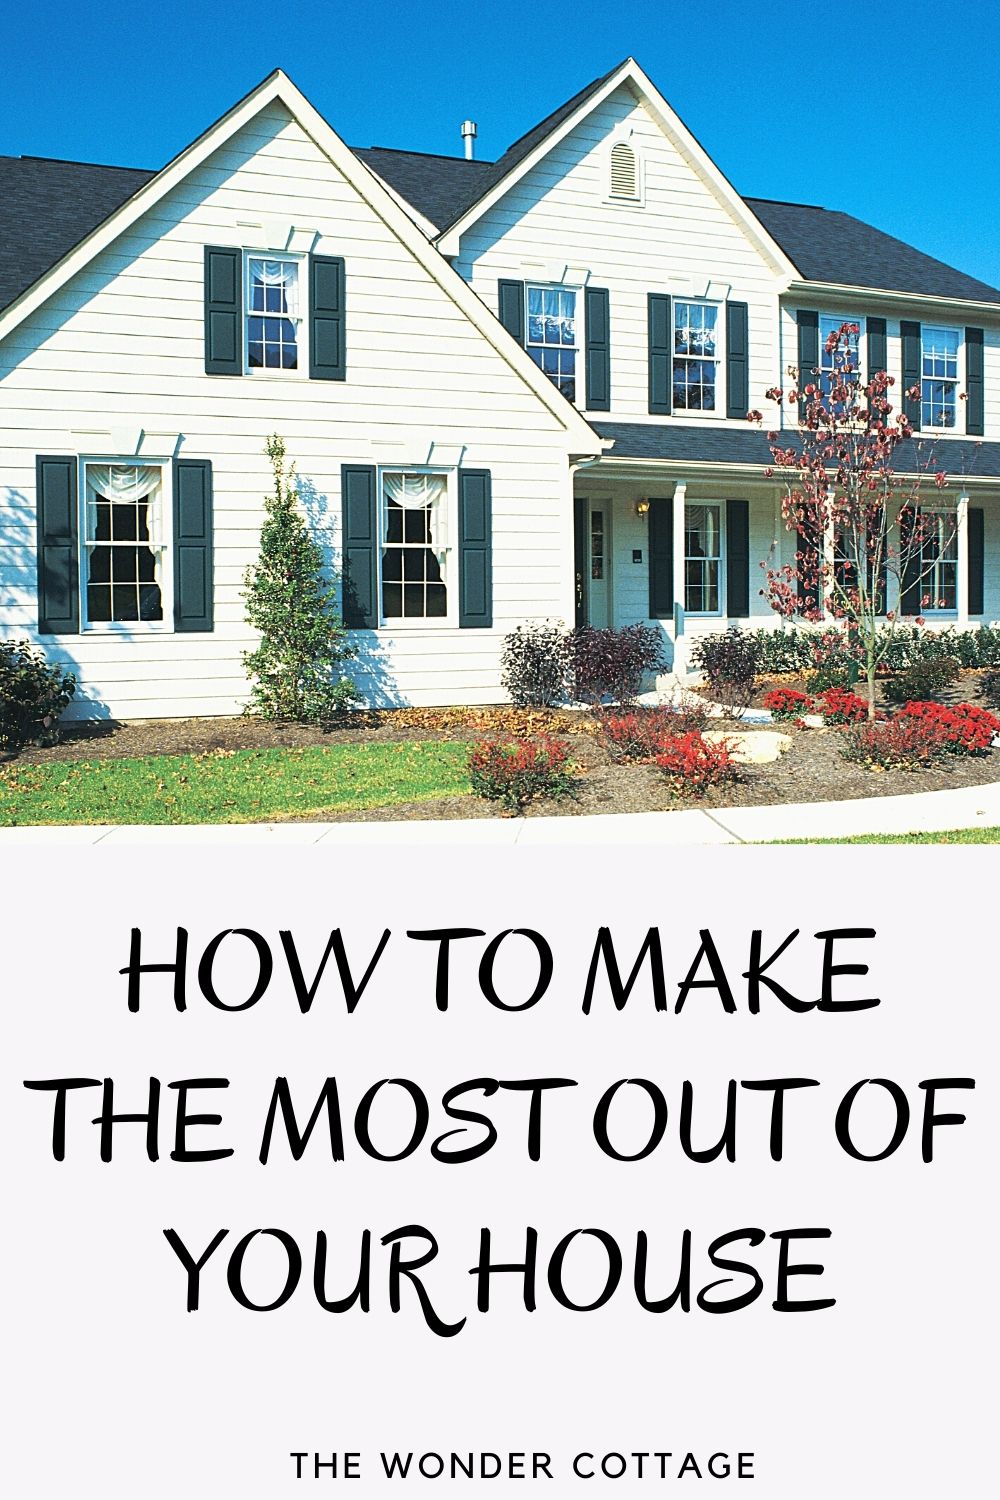 How to make the most out of your house